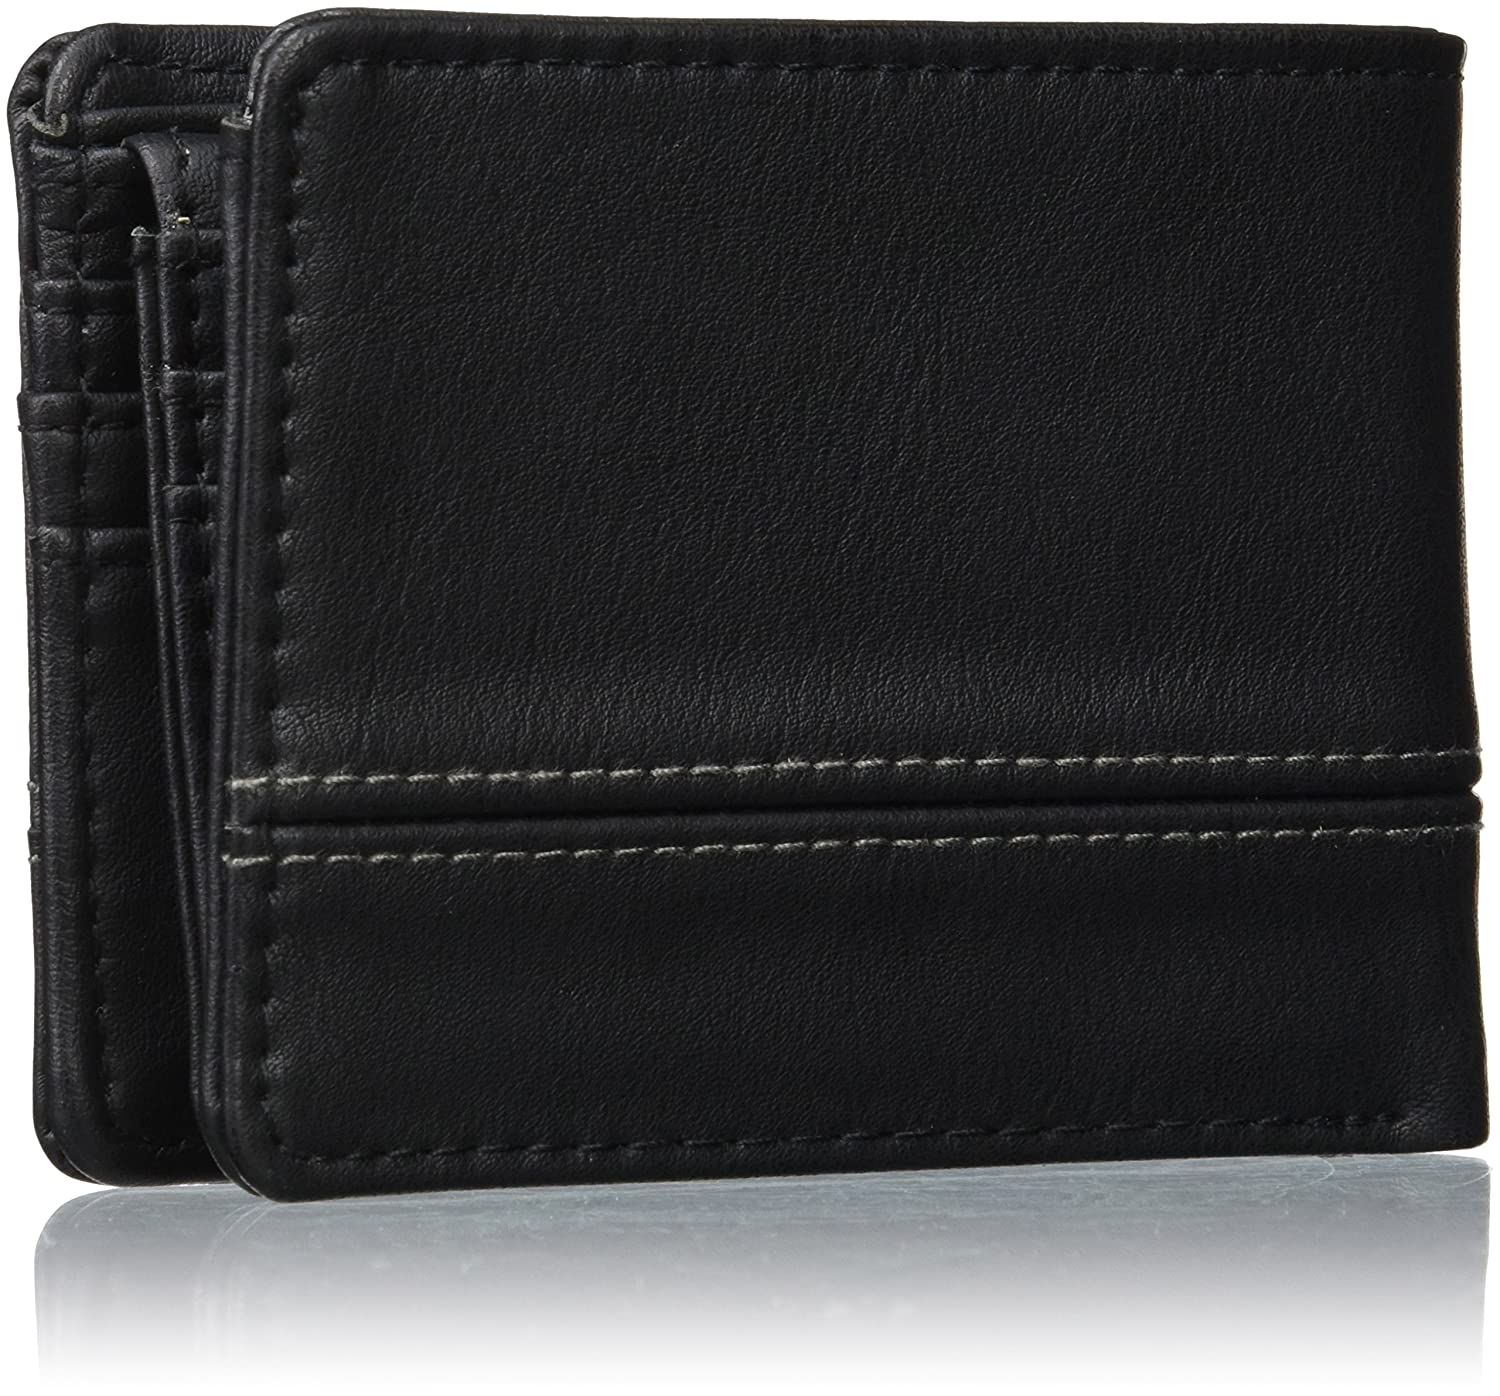 Billabong Dimension Monedero, Hombre, Negro (Black), 10 x 2 x 12 cm (W x H x L): Amazon.es: Equipaje